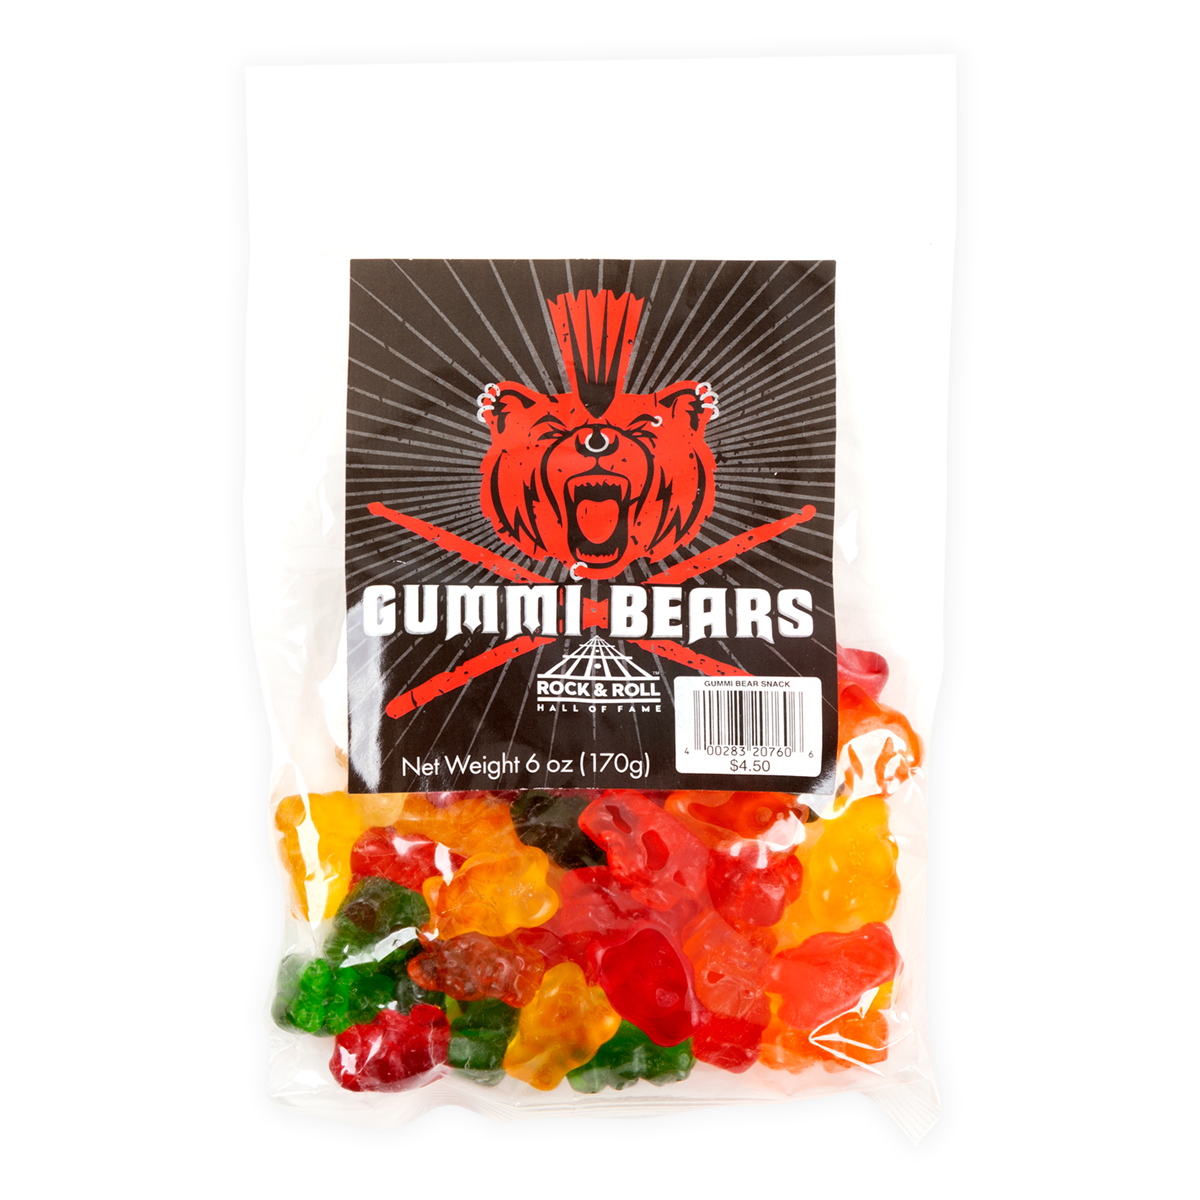 Candy Gummi Bears